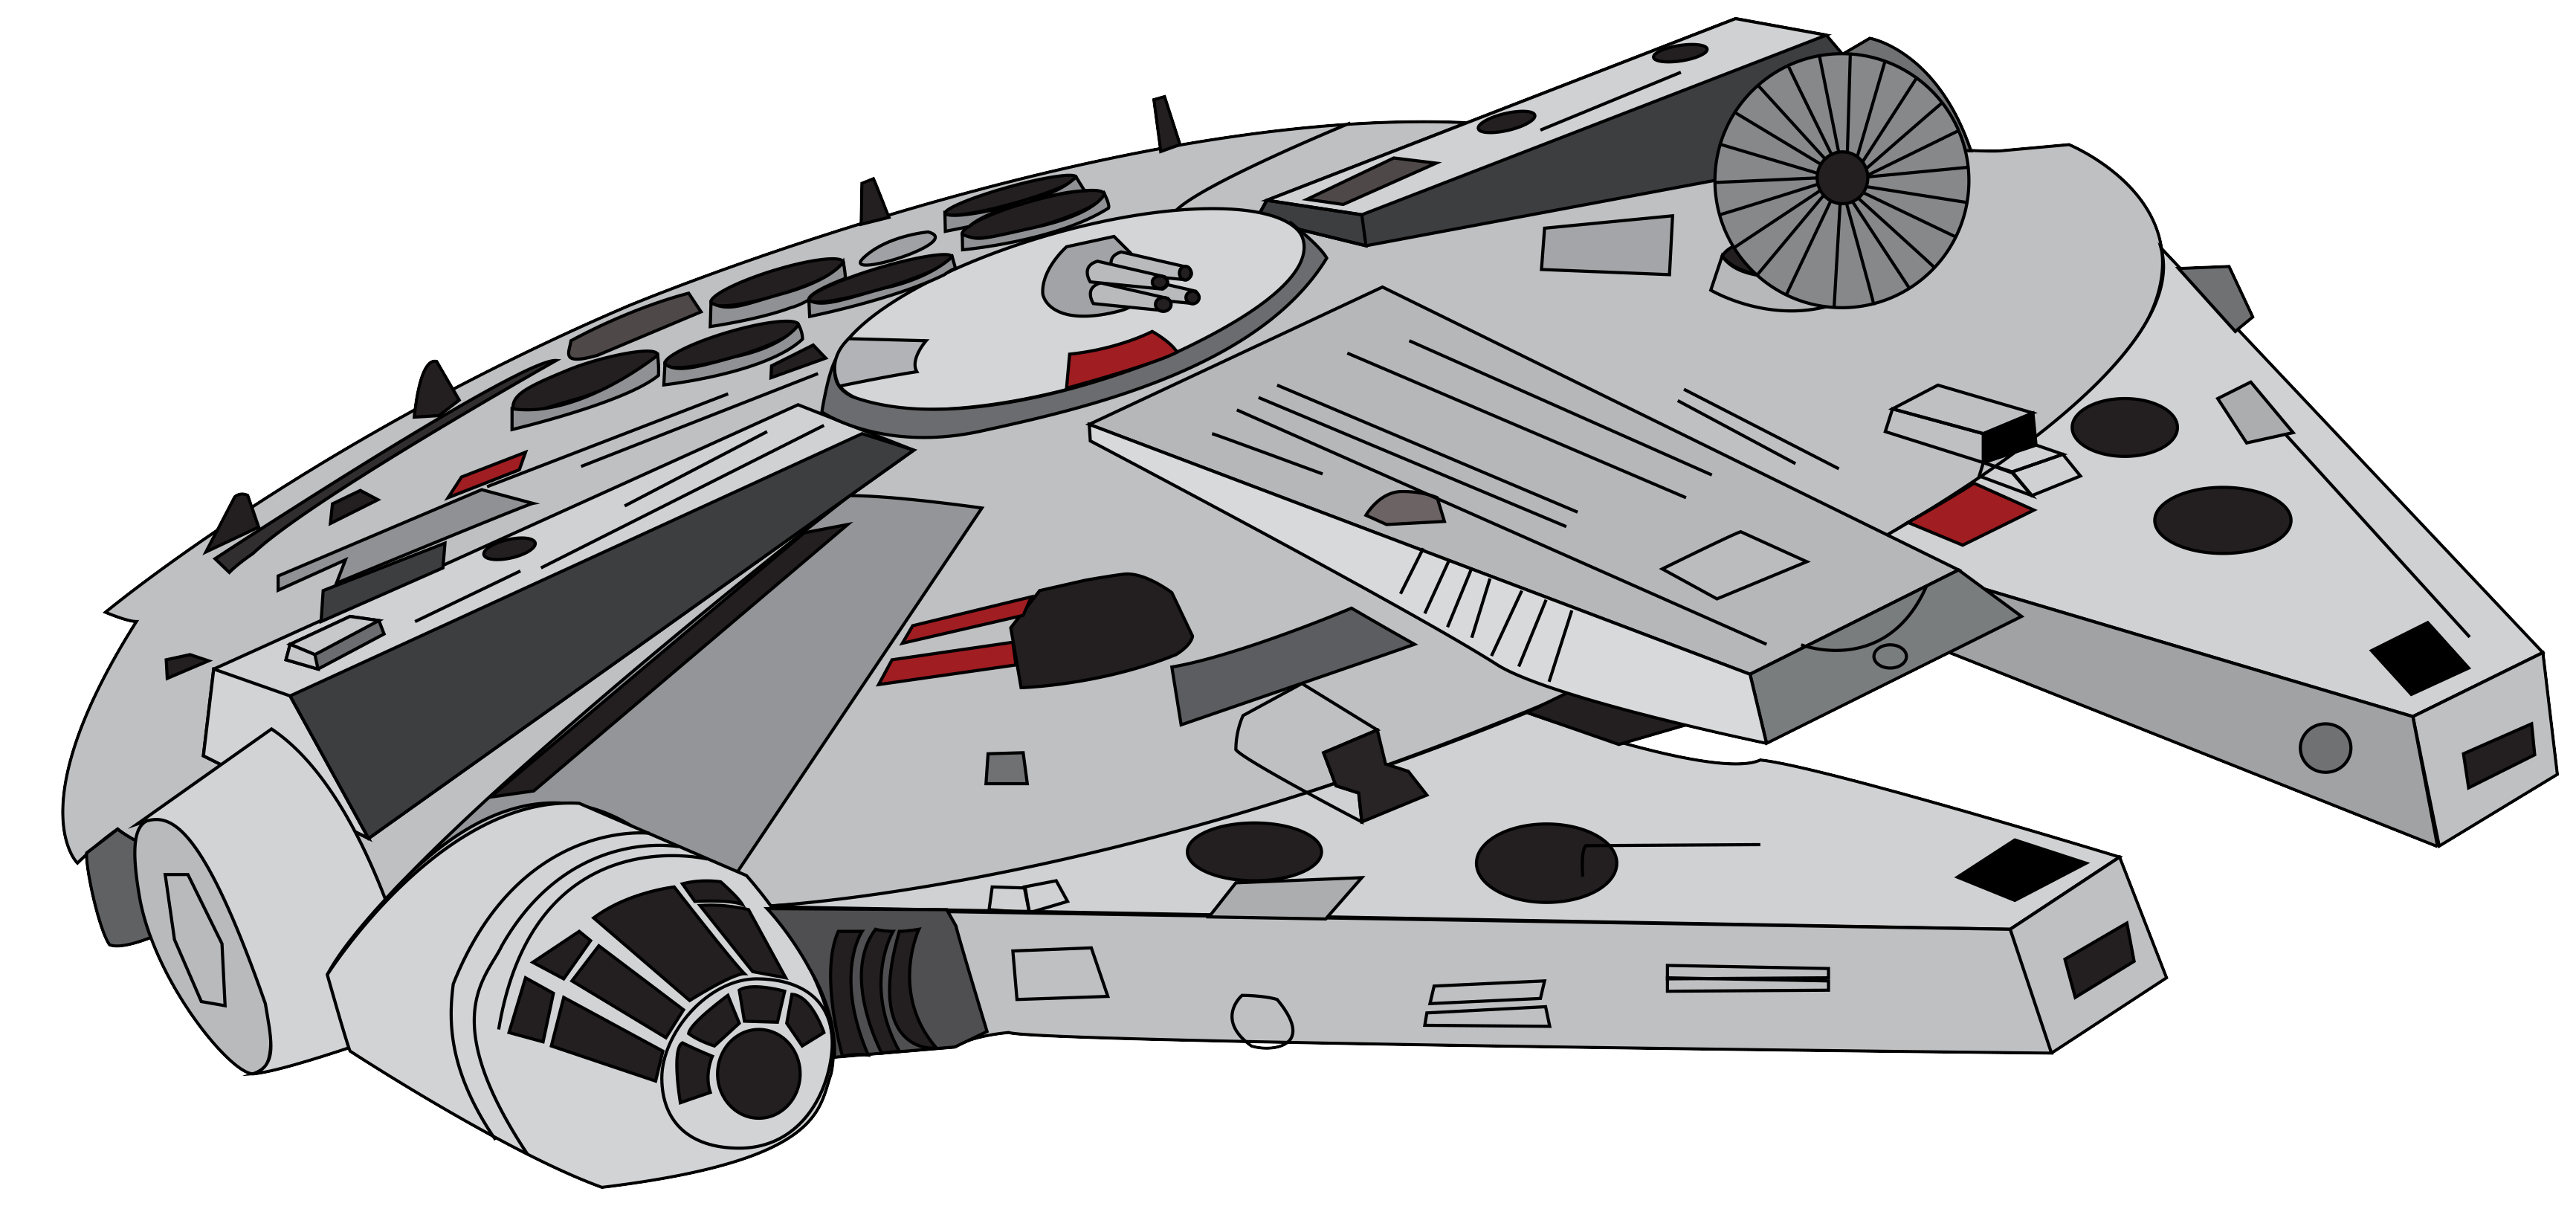 Star wars millennium falcon clipart graphic black and white library 28+ Collection of Millennium Falcon Cartoon Drawing | High quality ... graphic black and white library